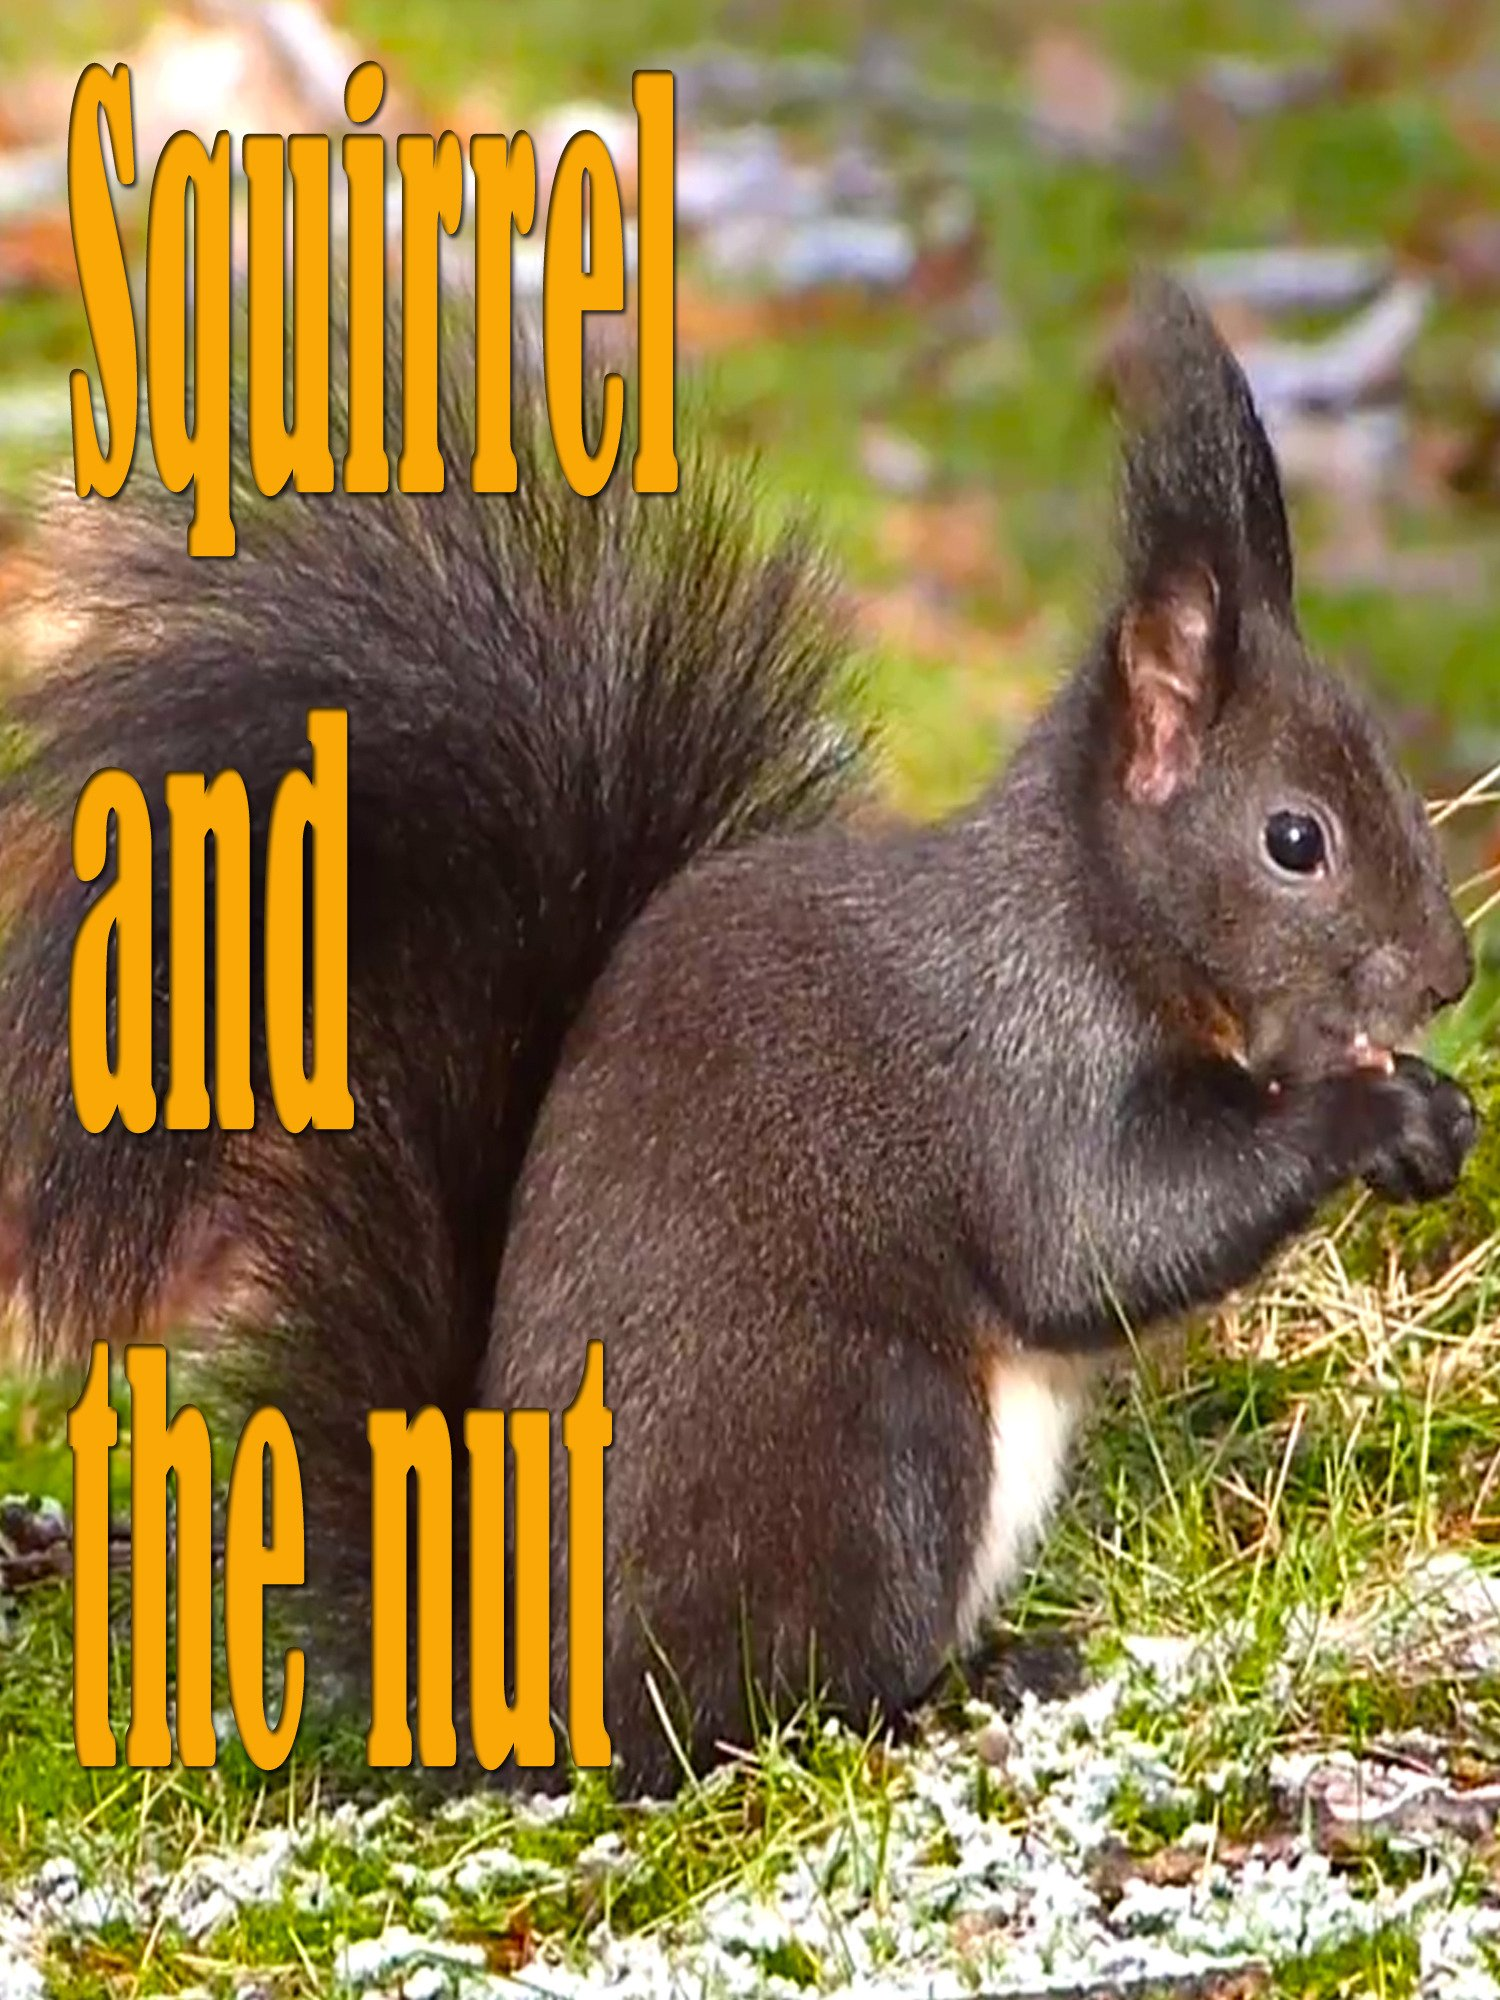 Clip: Squirrel and the nut